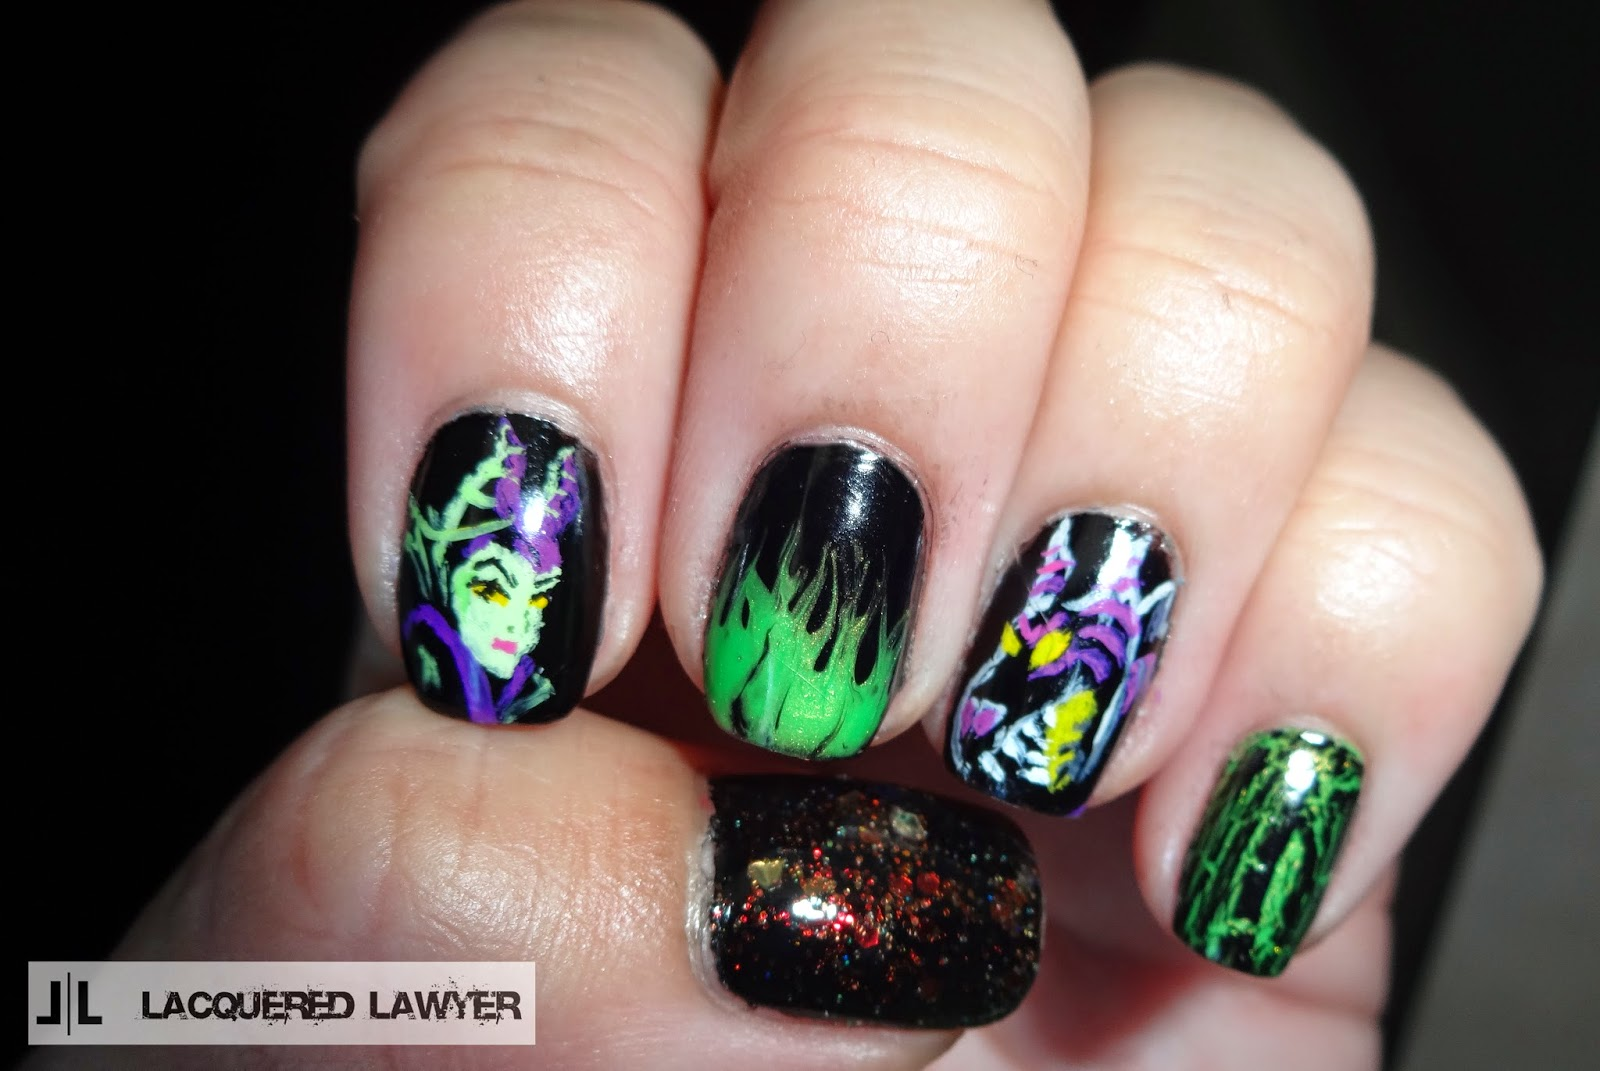 Lacquered Lawyer Nail Art Blog Maleficent Nail Art